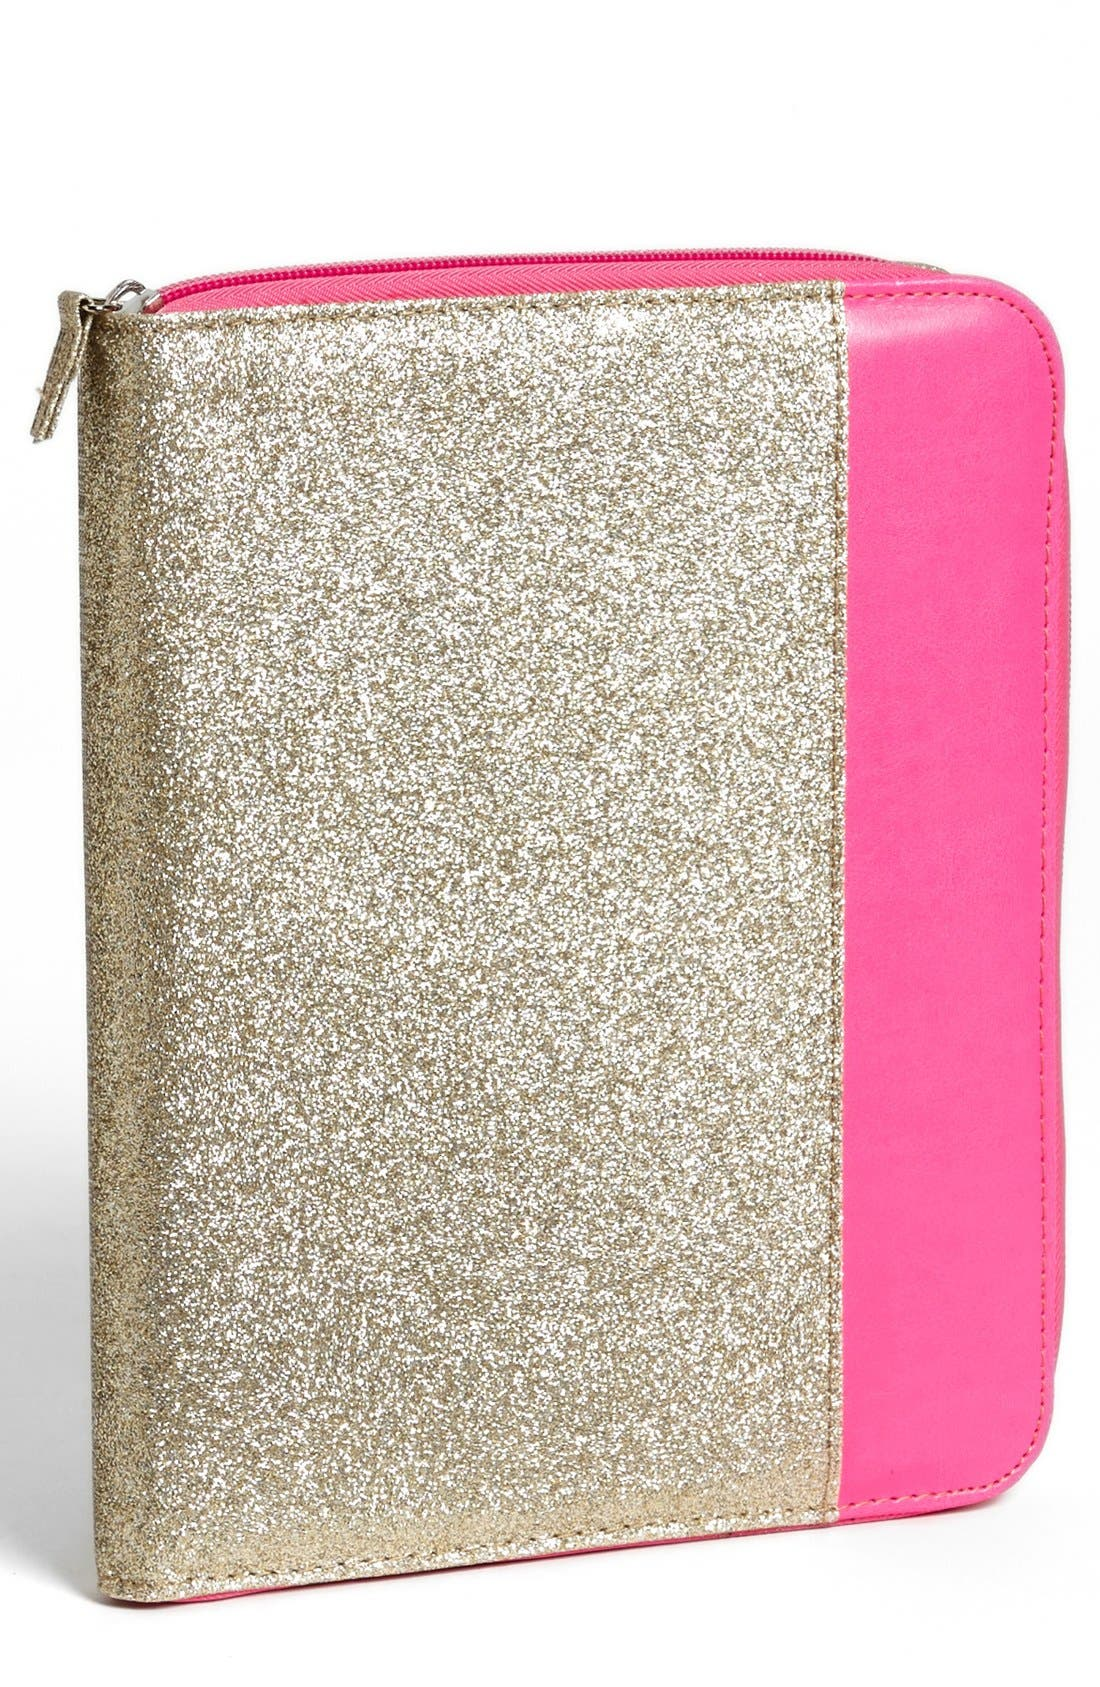 Main Image - Capelli of New York iPad Case (Girls)